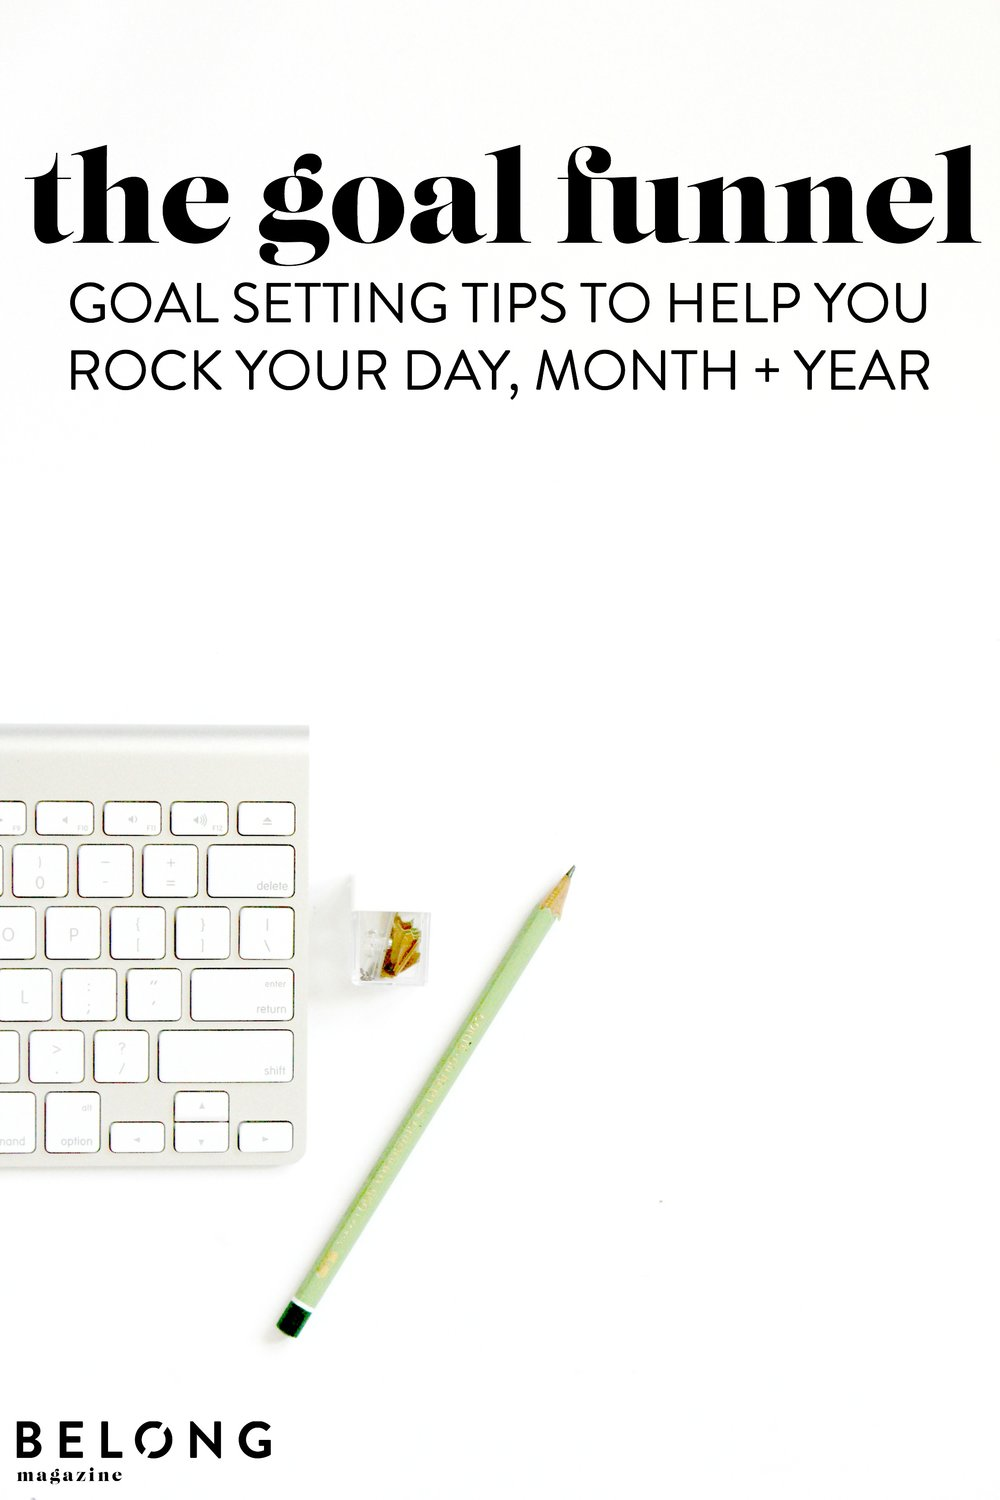 the goal funnel - goal setting tips to help you rock your day, week, month and year - belong magazine blog